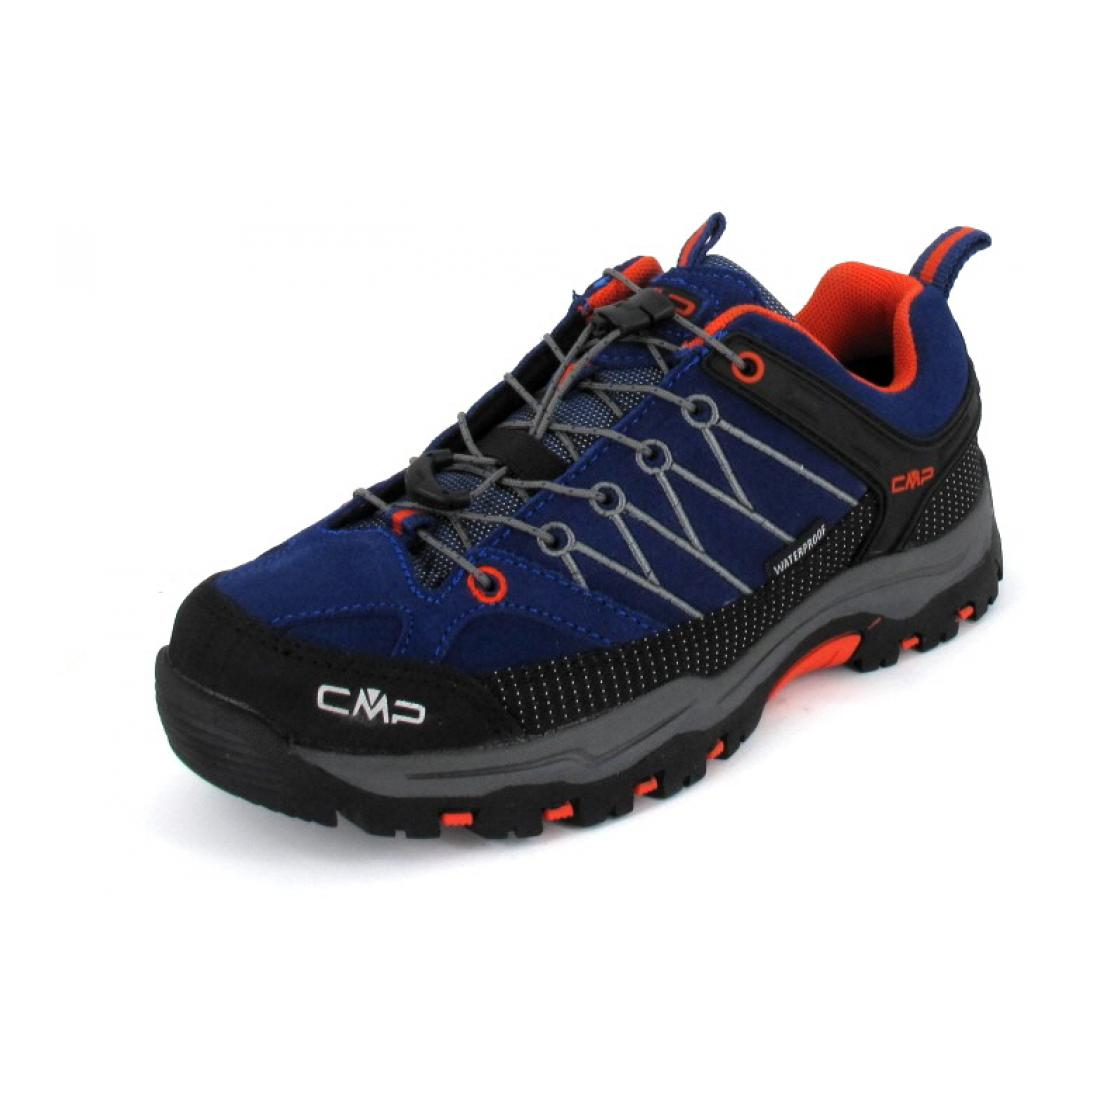 CMP Outdoor Stiefel Kids Low Trekking Shoes